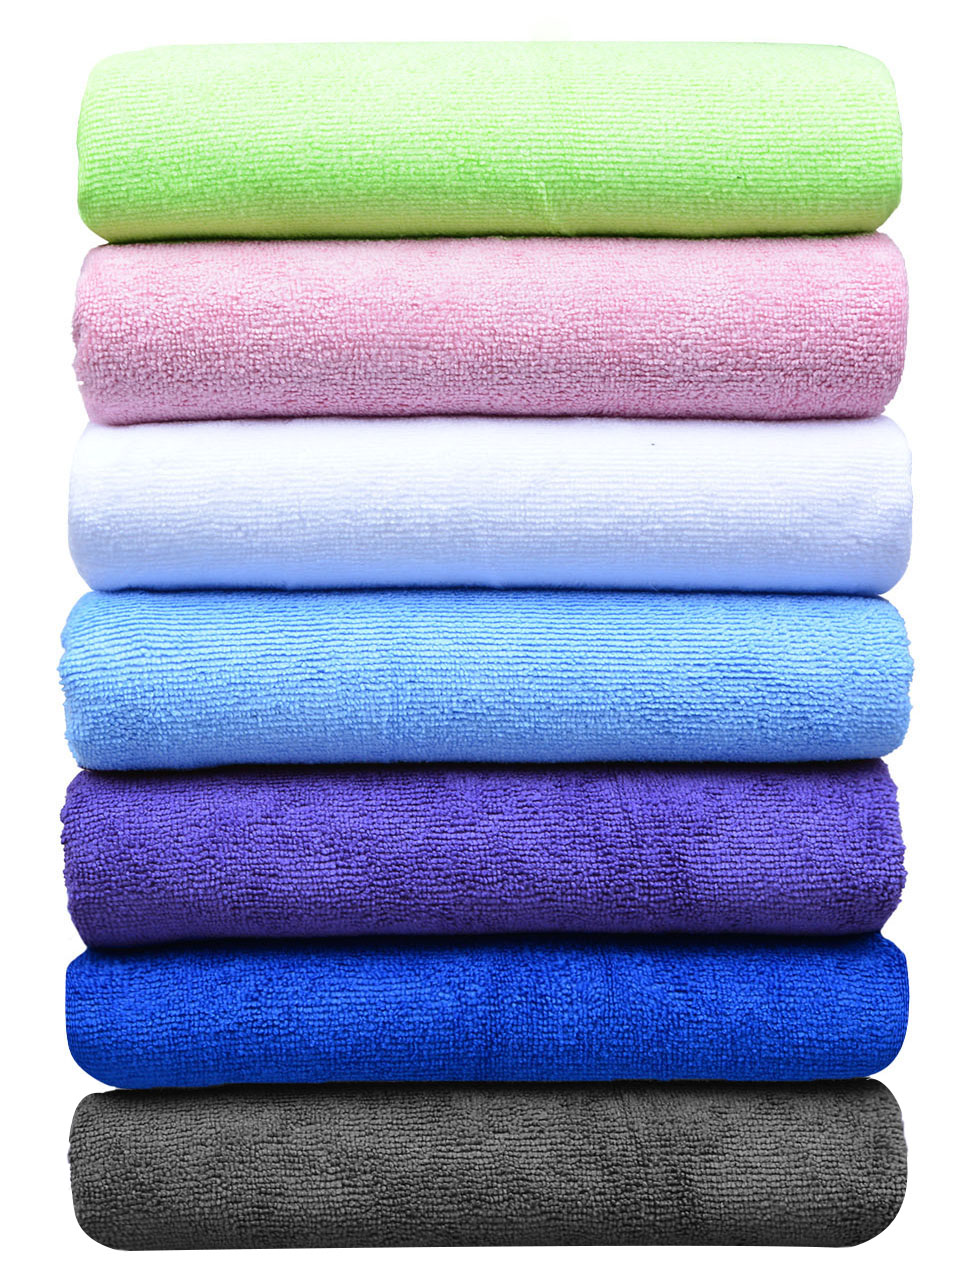 Sunland 81.3cmx152.5cm Large Microfiber Bath Towel Beach Towel Absorbent Travel Swimming Sports Workout Towels with a bag(China (Mainland))